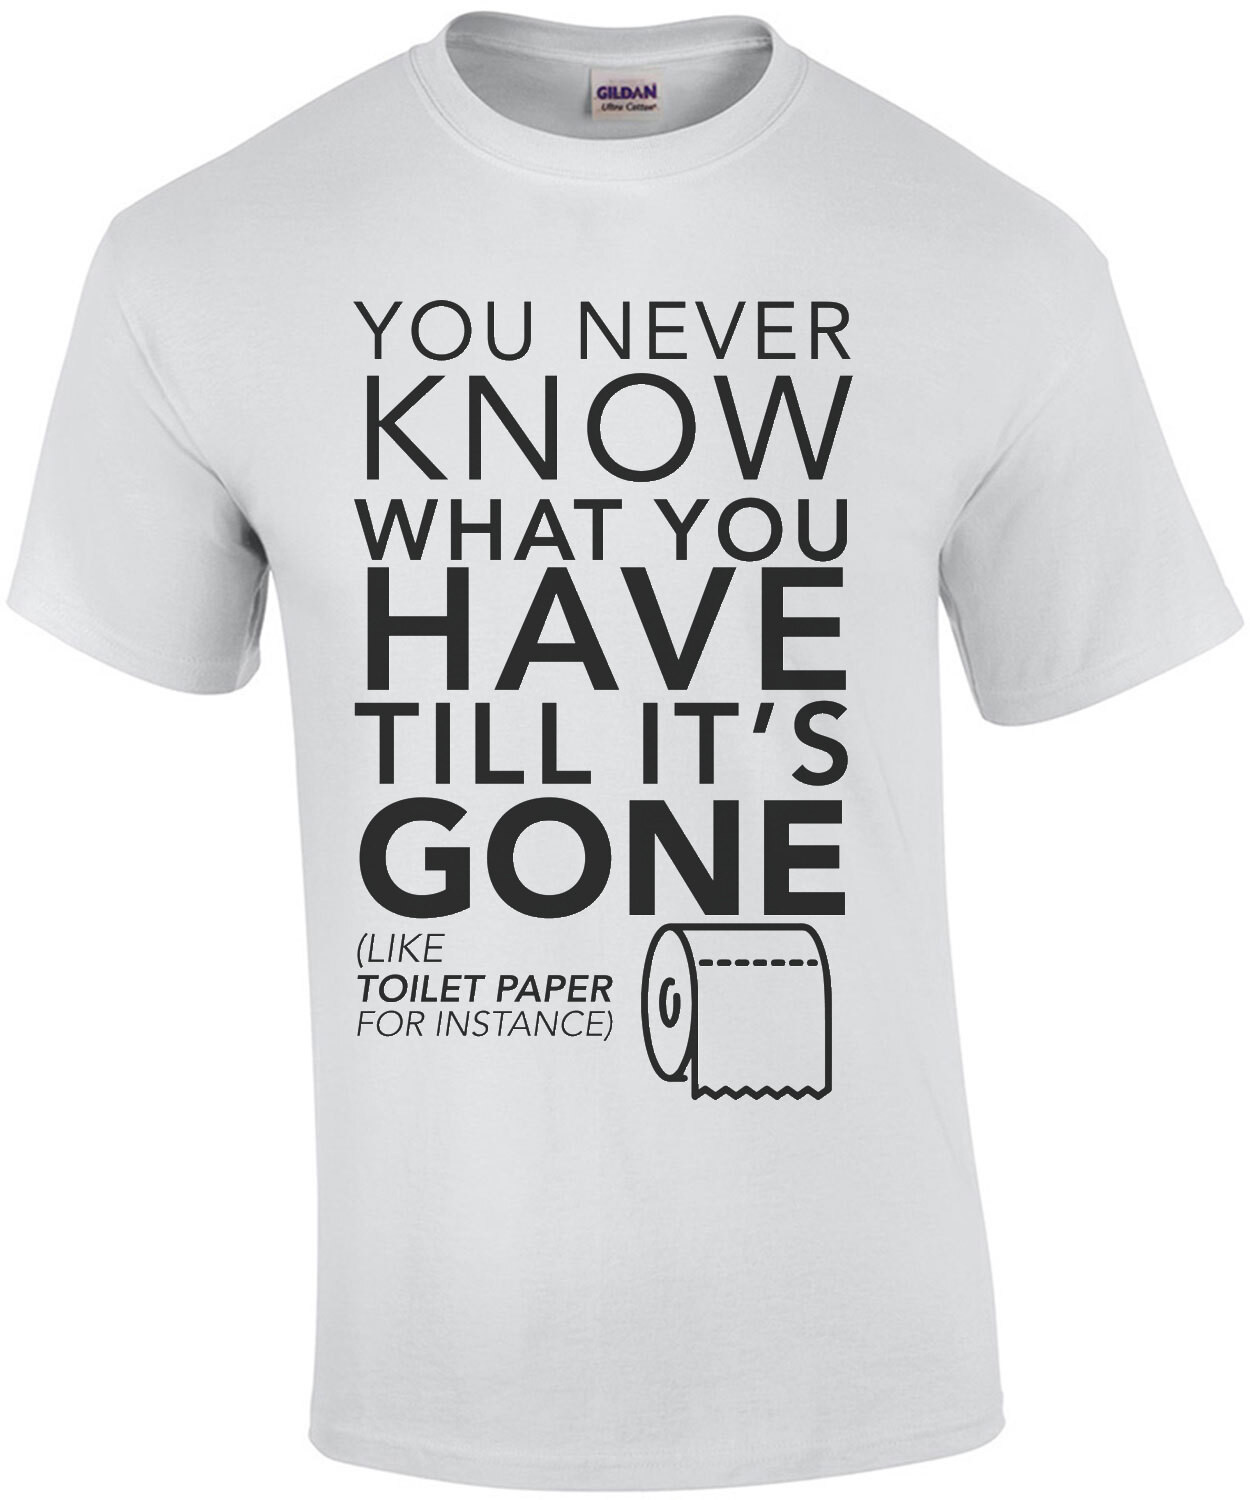 You never know what you have till it's gone (like toilet paper for instance) funny t-shirt